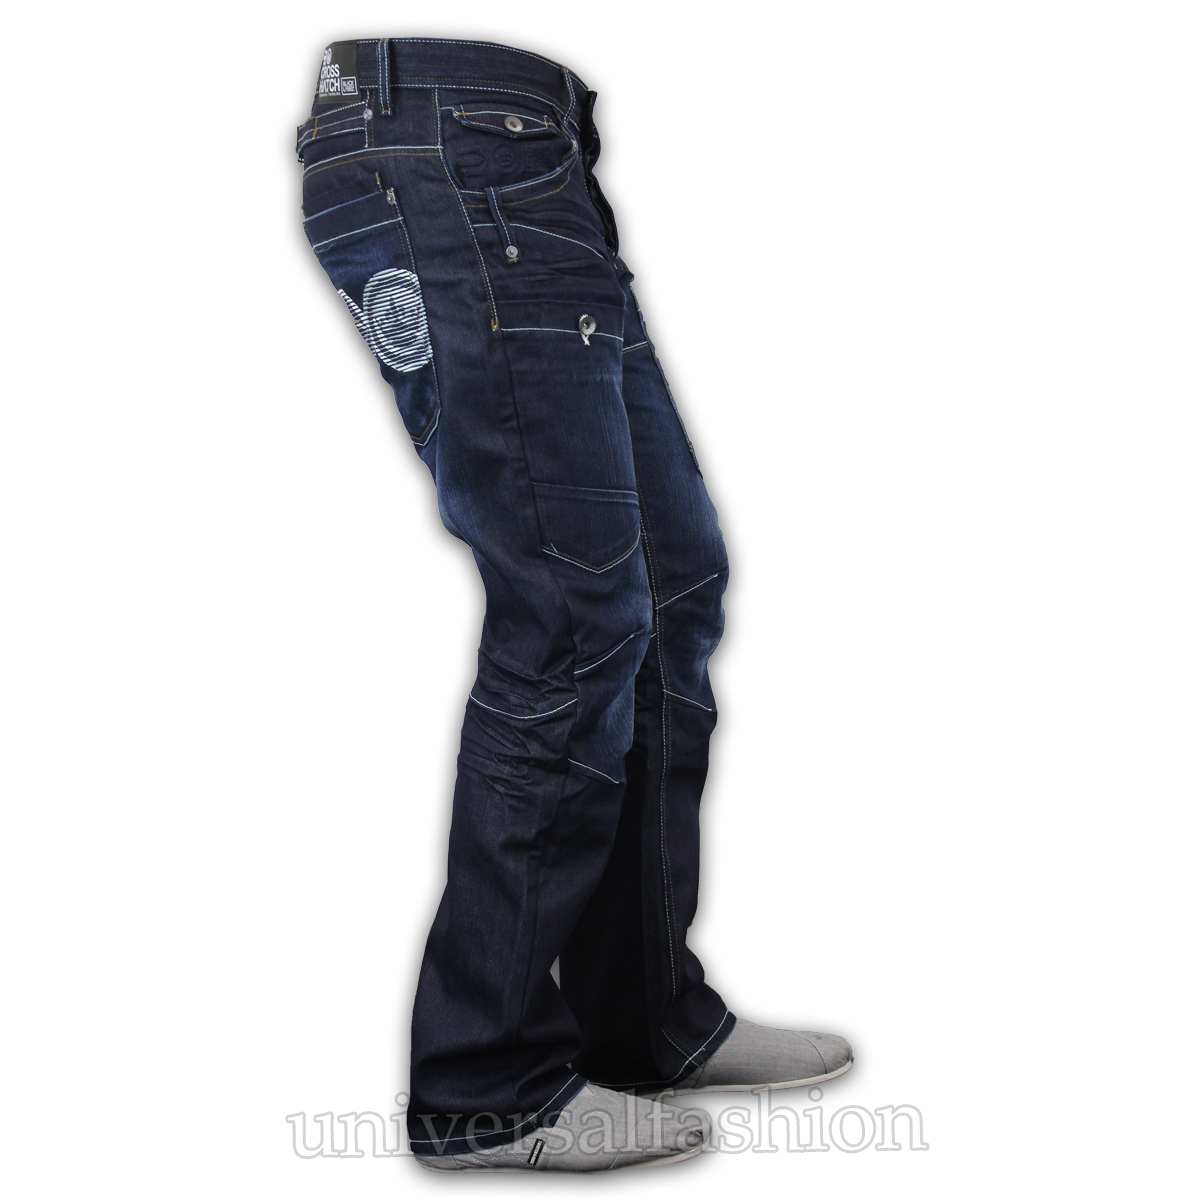 Mens-Denim-Jeans-Crosshatch-Cargo-Combat-Pants-Bottoms-Straight-Leg-Designer-New